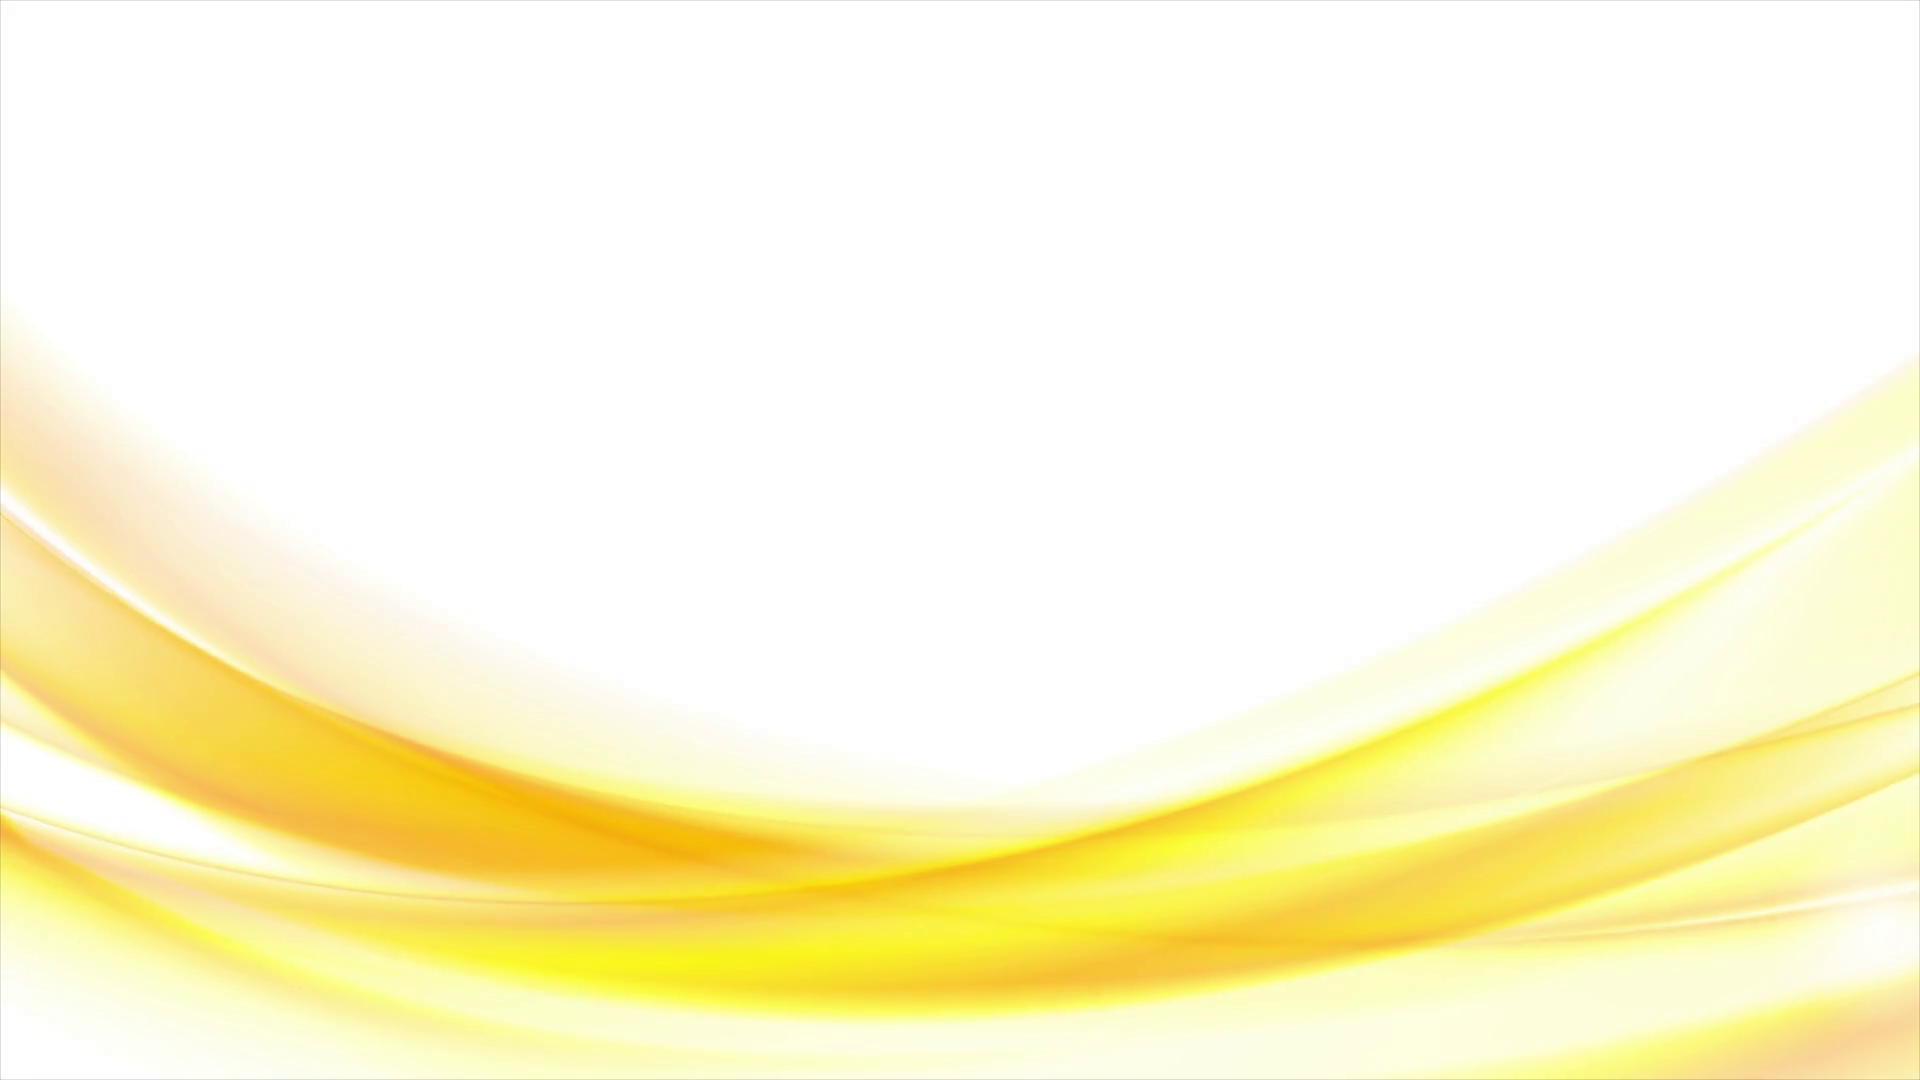 Yellow Background Png (102+ images in Collection) Page 3.